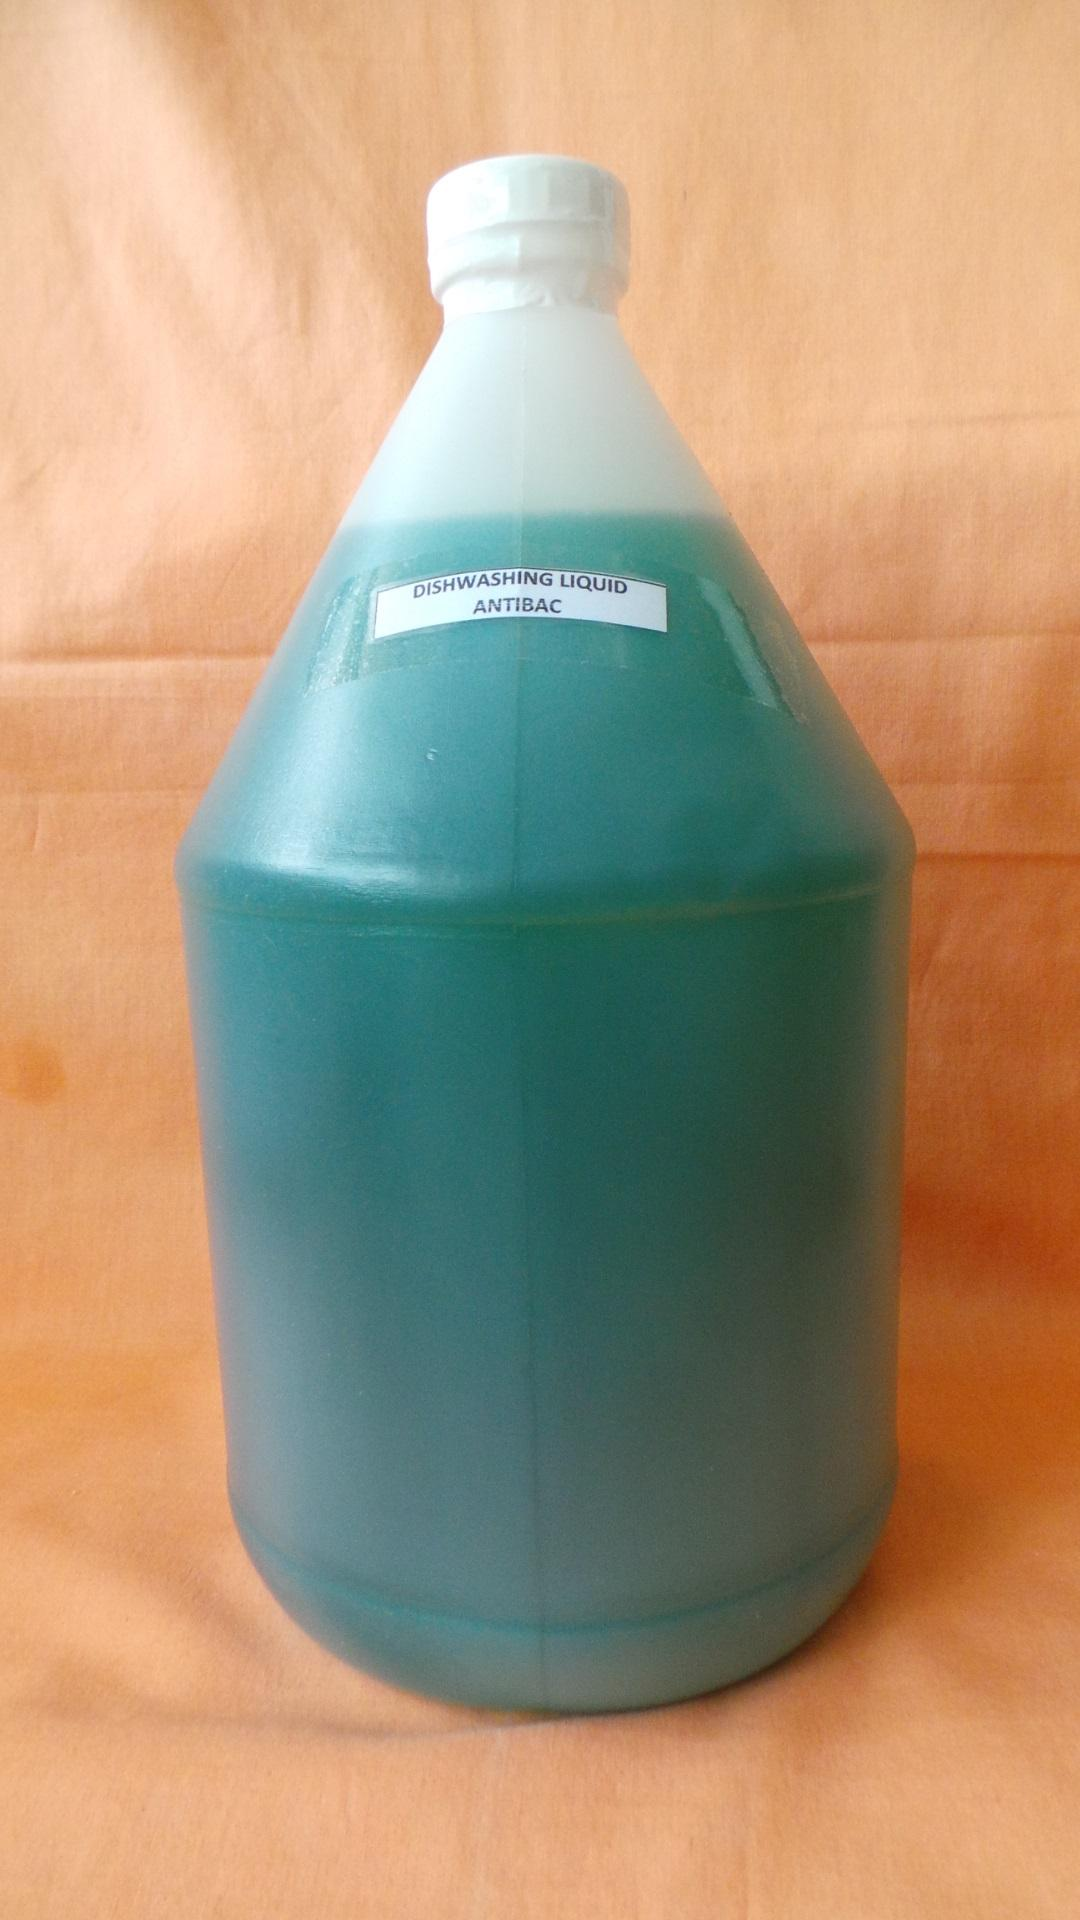 Dishwashing With Antibac 1 Gallon Or 3.8 Liters (concentrated) By Wallyps Shop.